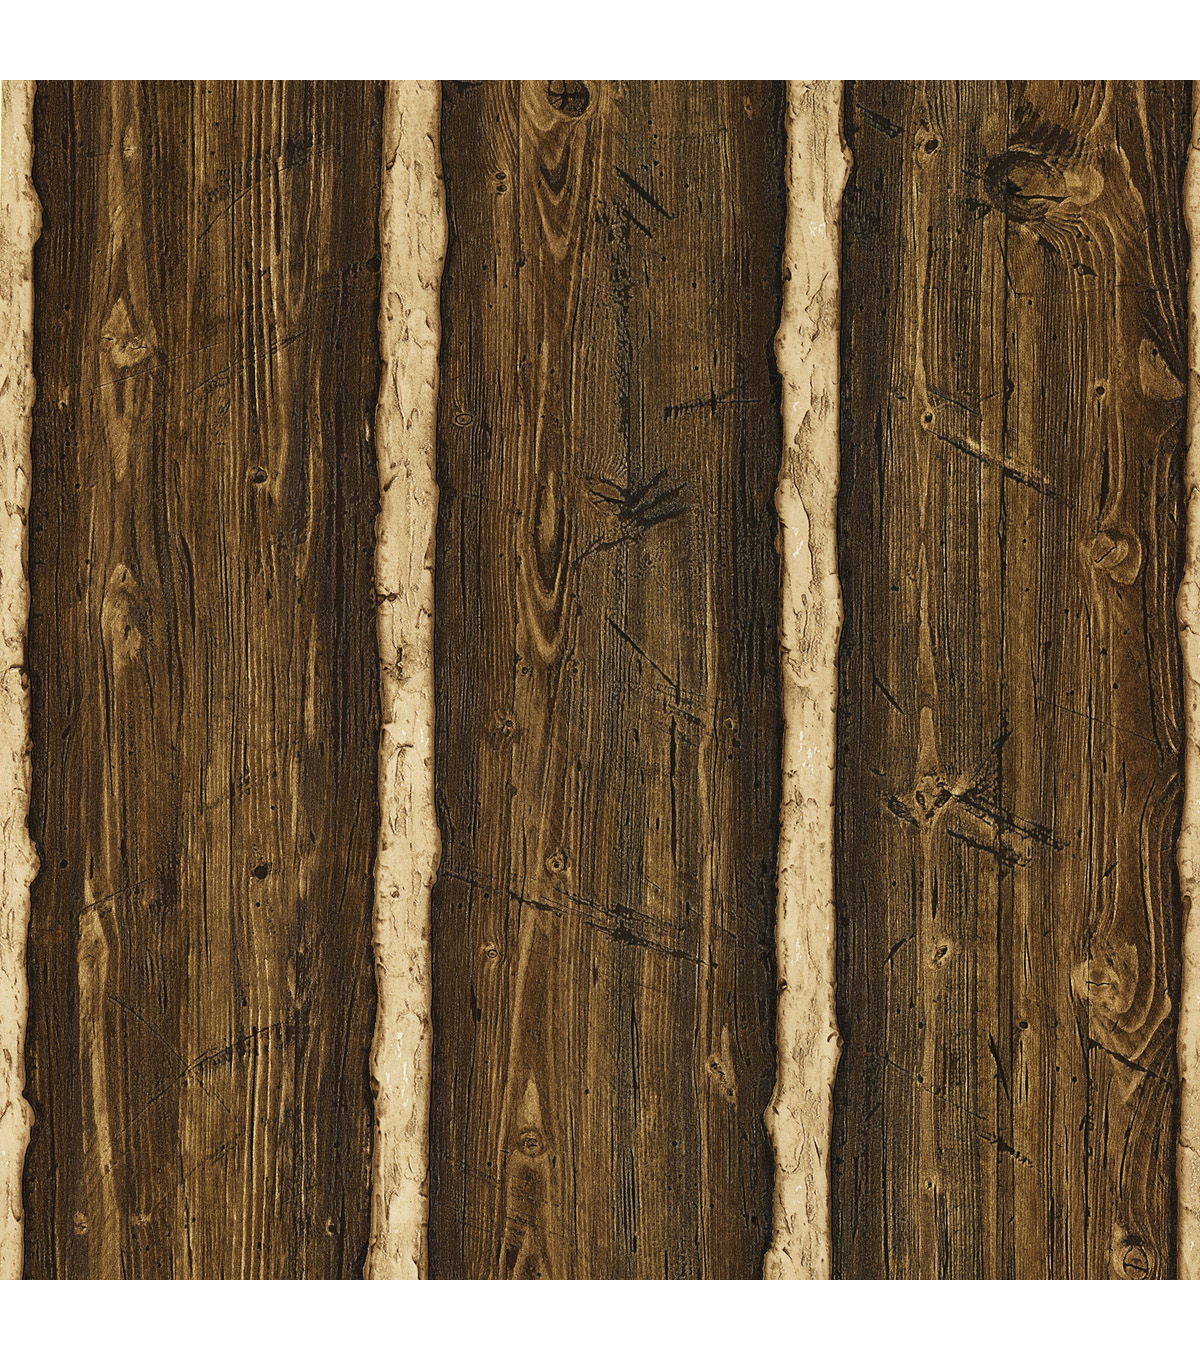 Franklin Dark Brown Rustic Pine Wood Wallpaper Sample